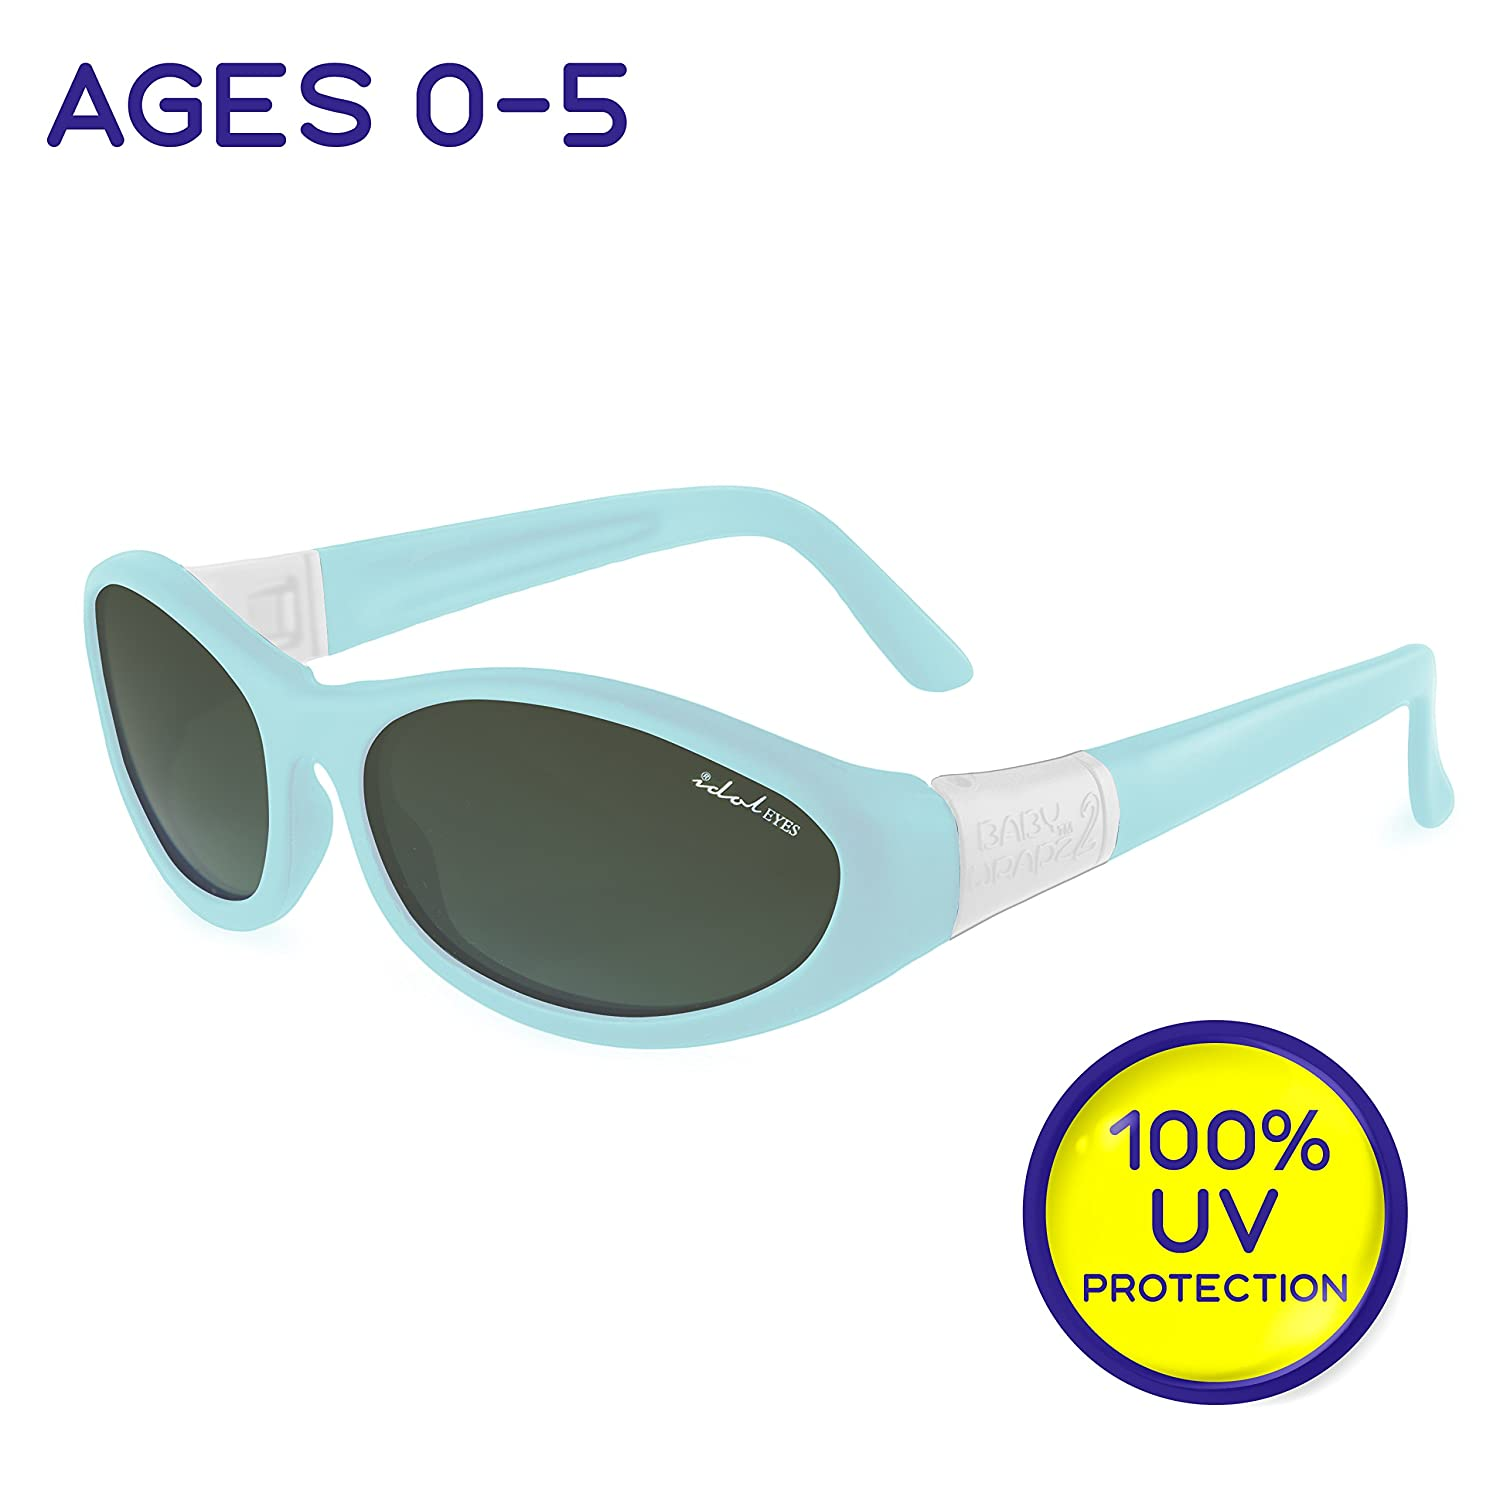 """Idol Eyes Kids Sunglasses for Kids - """"Baby Wrapz 2"""" 100% UV Protection Baby Sunglasses with Strap and Temples + Extra Baby Sunglasses Strap for Ages 0-5 (Blue)"""